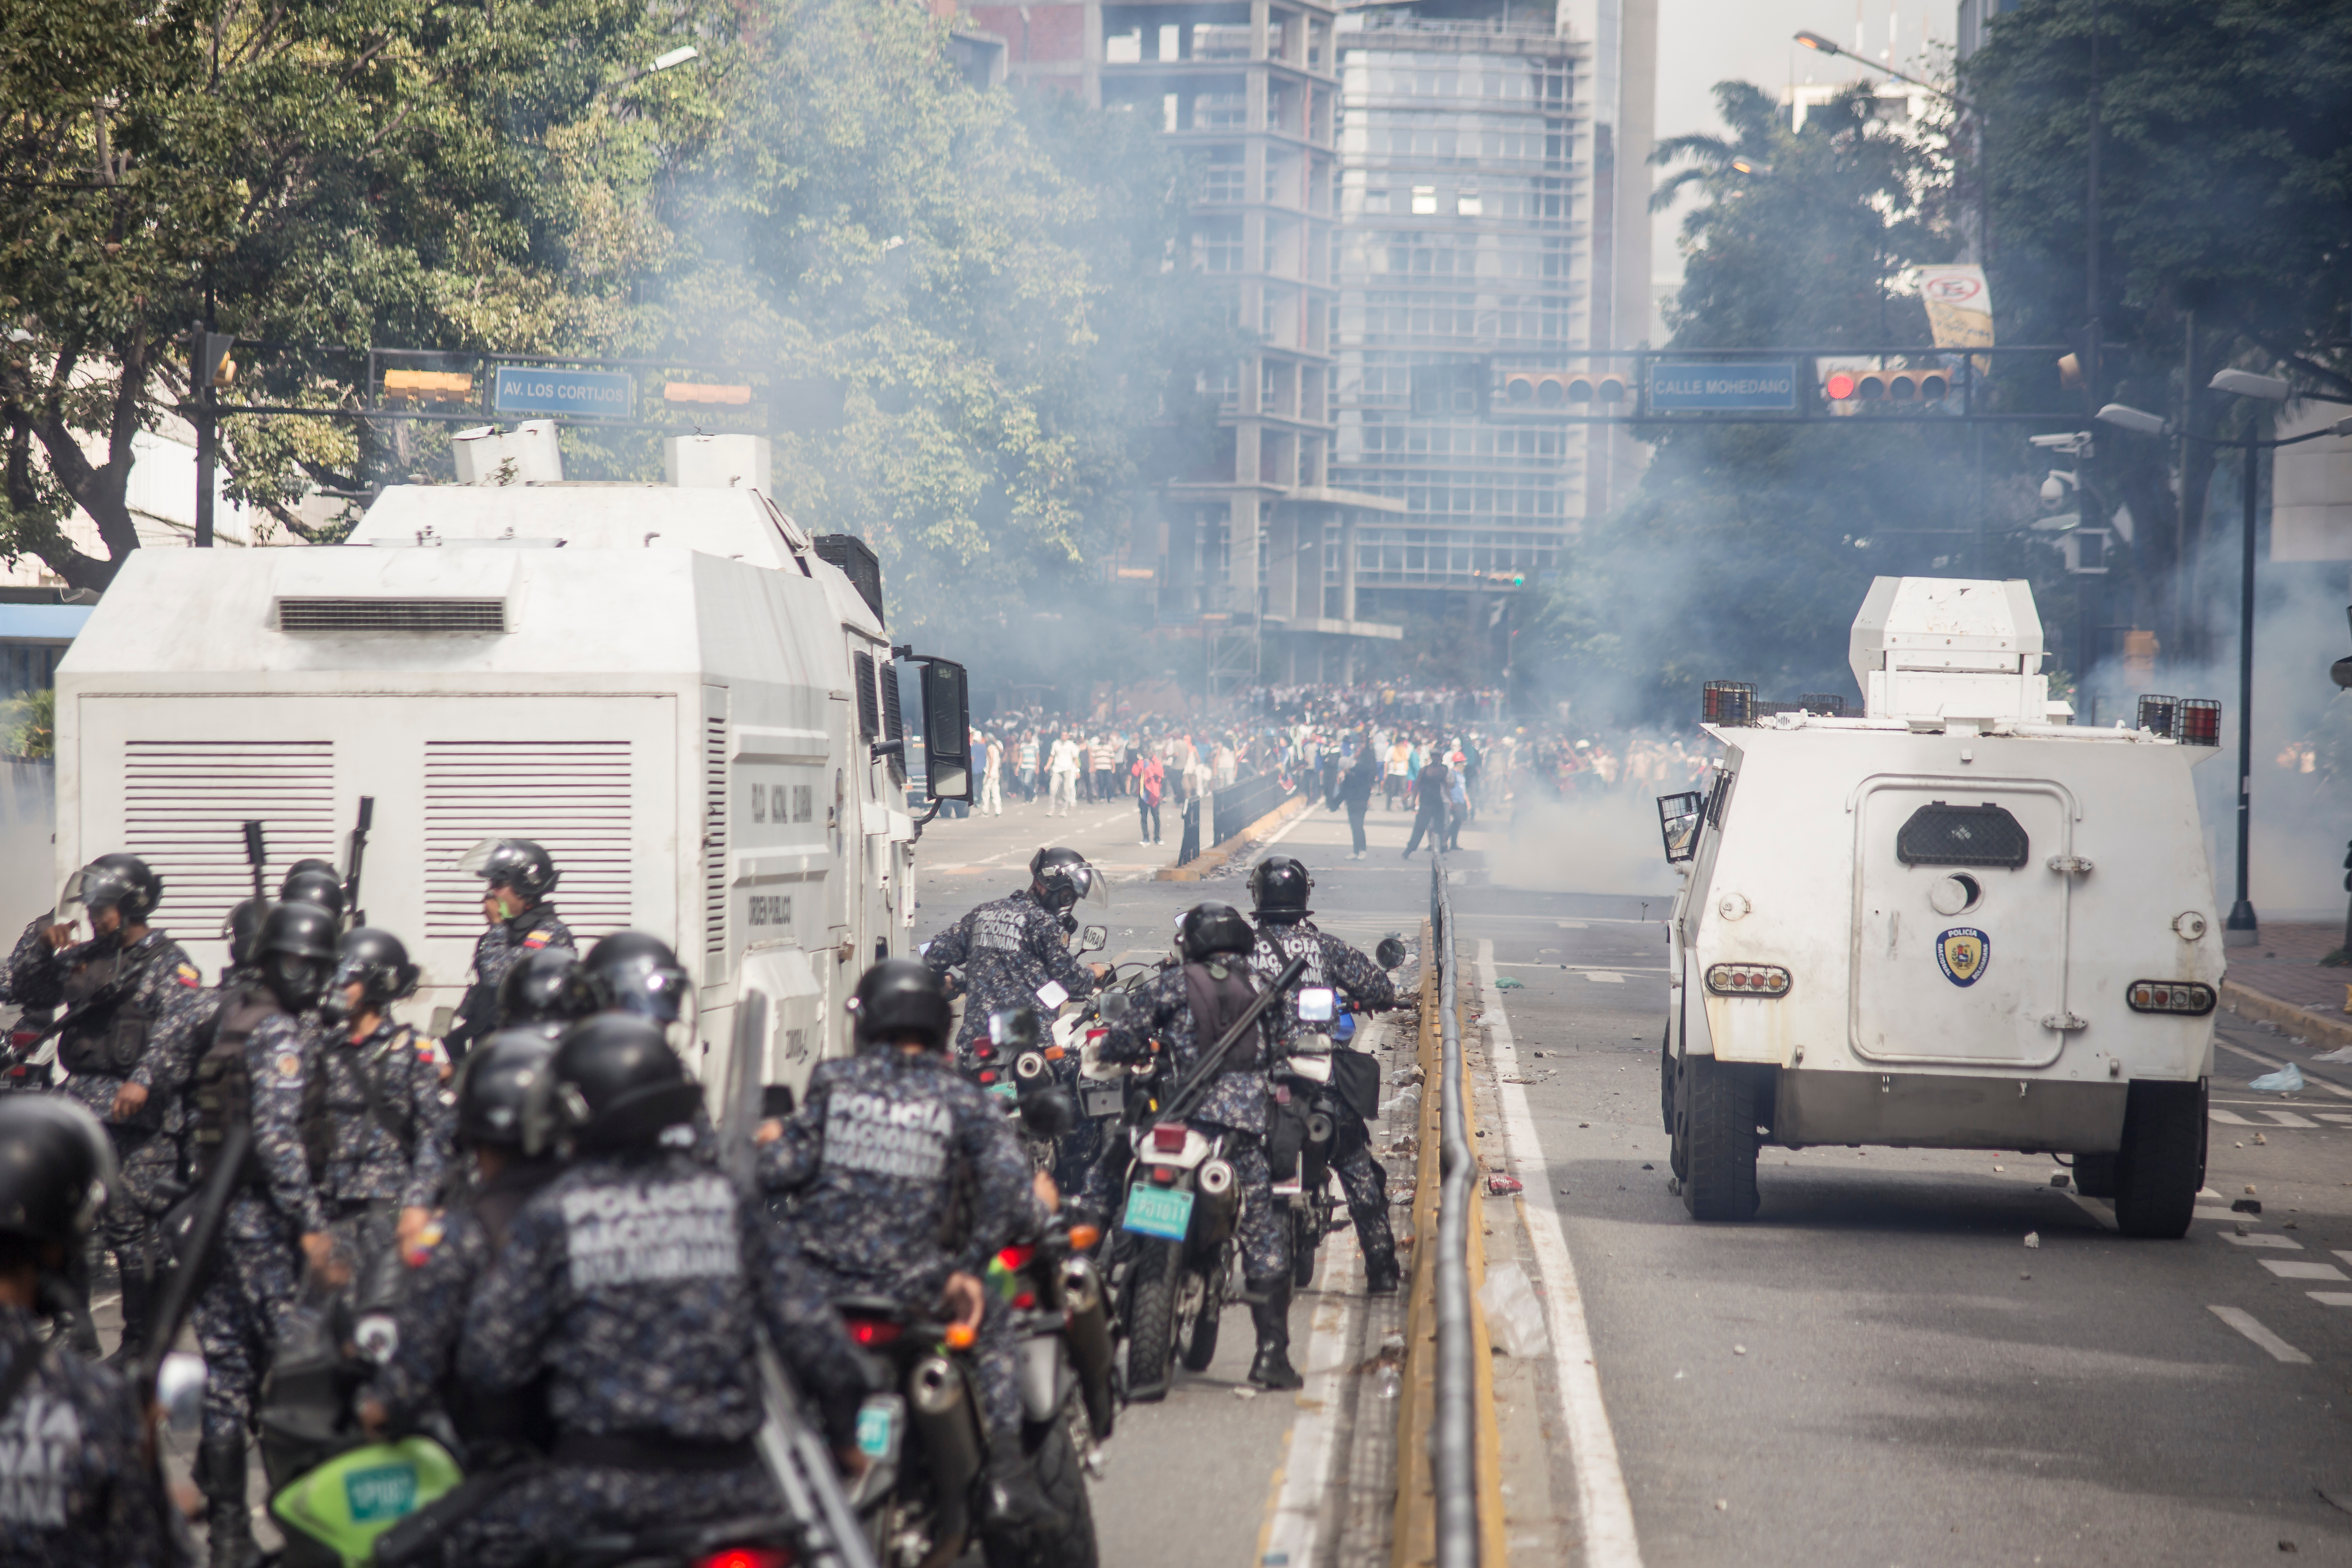 Caracas, Miranda/Venezuela - January 23rd 2019: Demonstrators clash with the police after attending rally in support of Venezuela's National Assembly President Juan Guaido. Ruben Alfonzo/Shutterstock